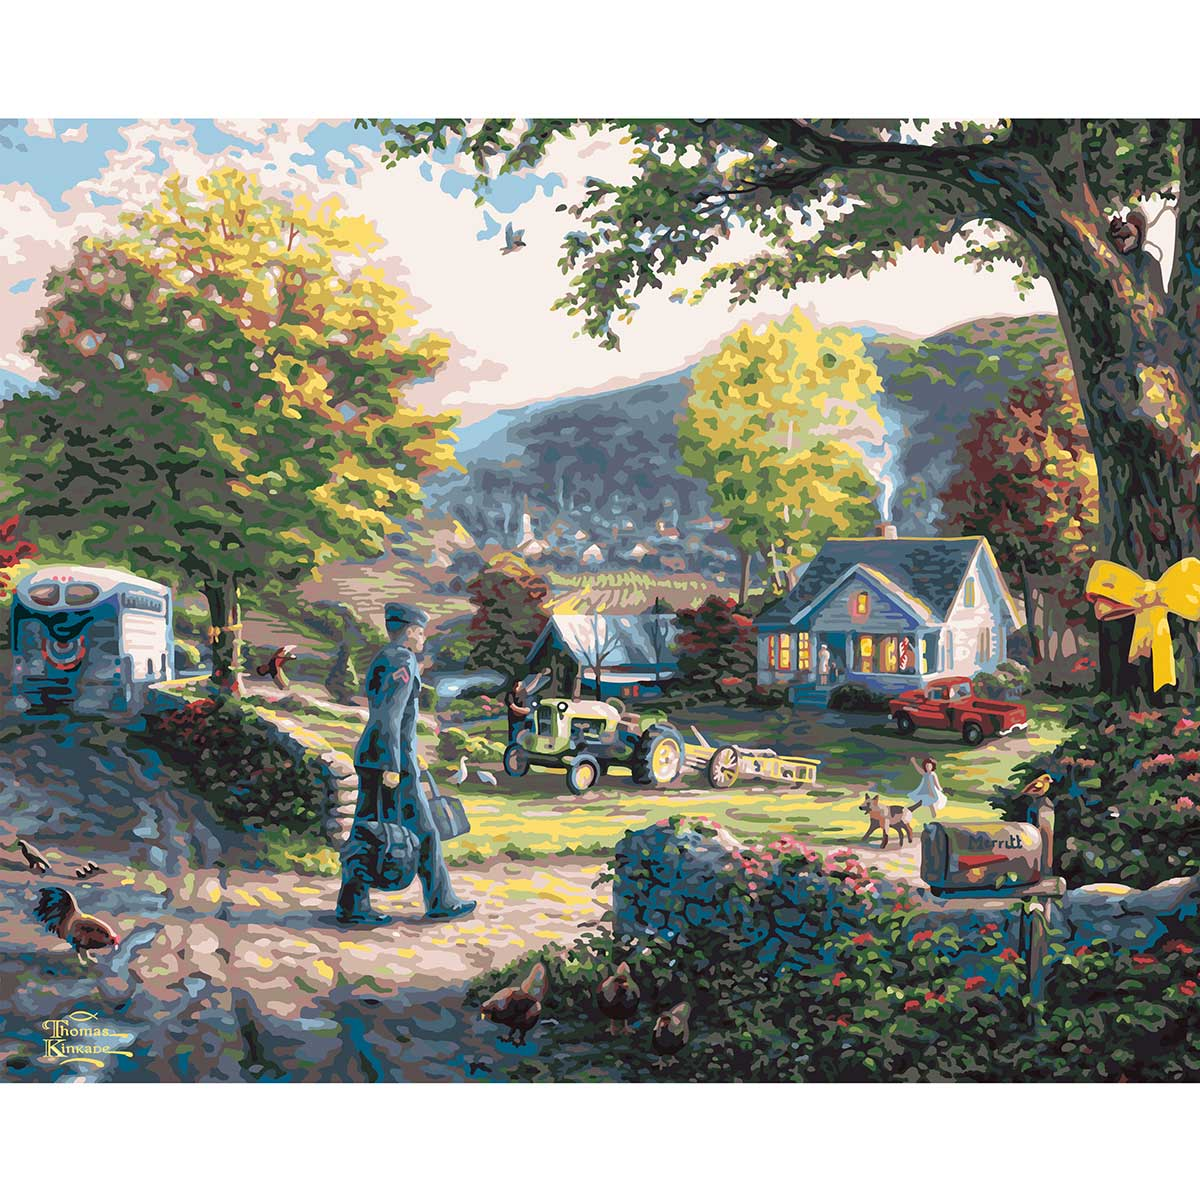 Plaid ® Paint by Number - Thomas Kinkade™ - Homecoming Hero